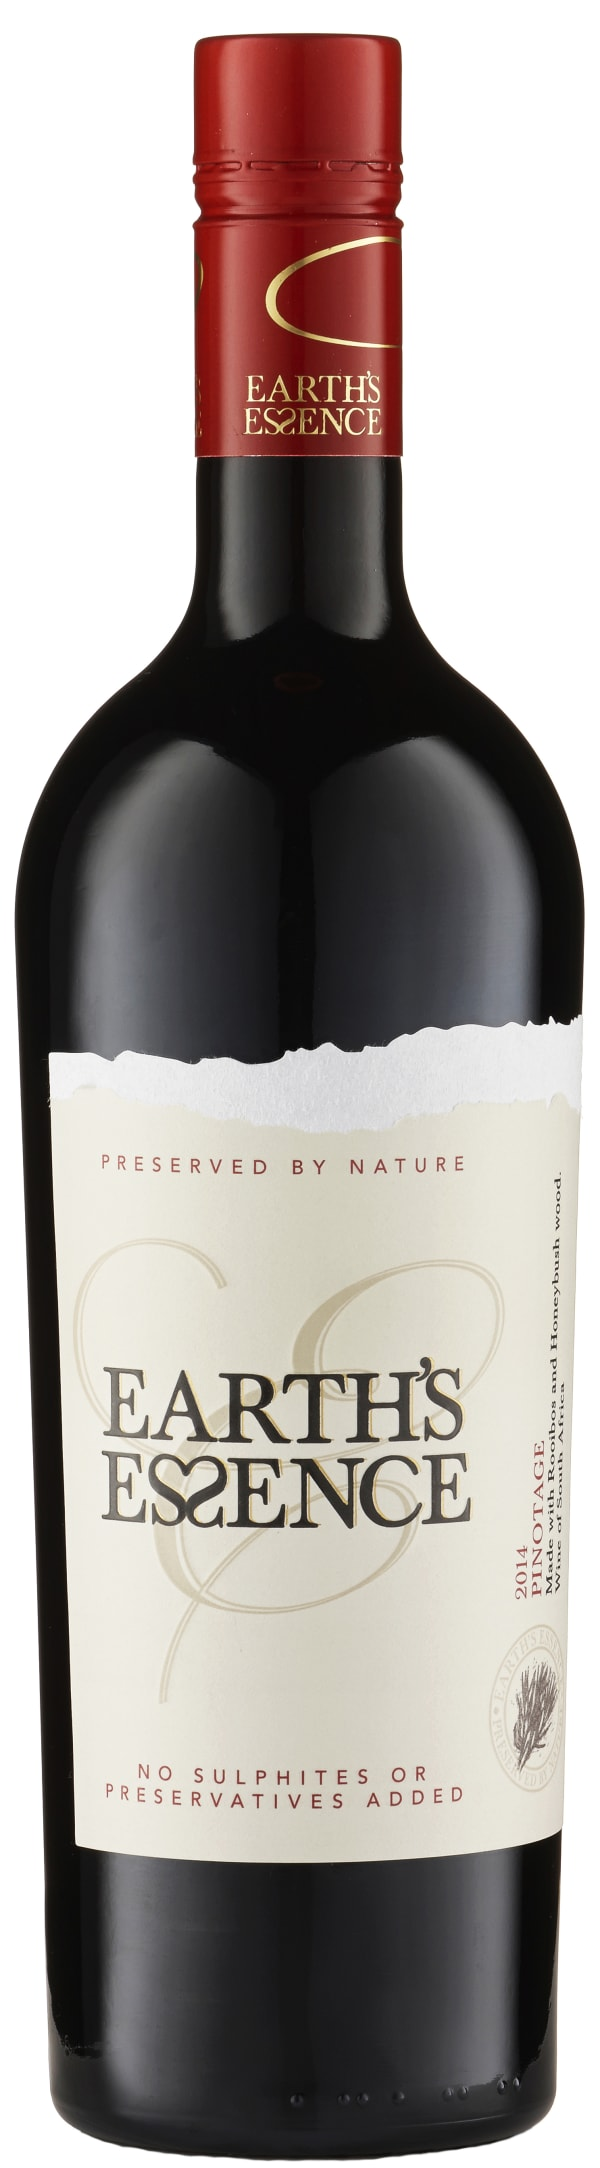 KWV Earth's Essence Pinotage 2015